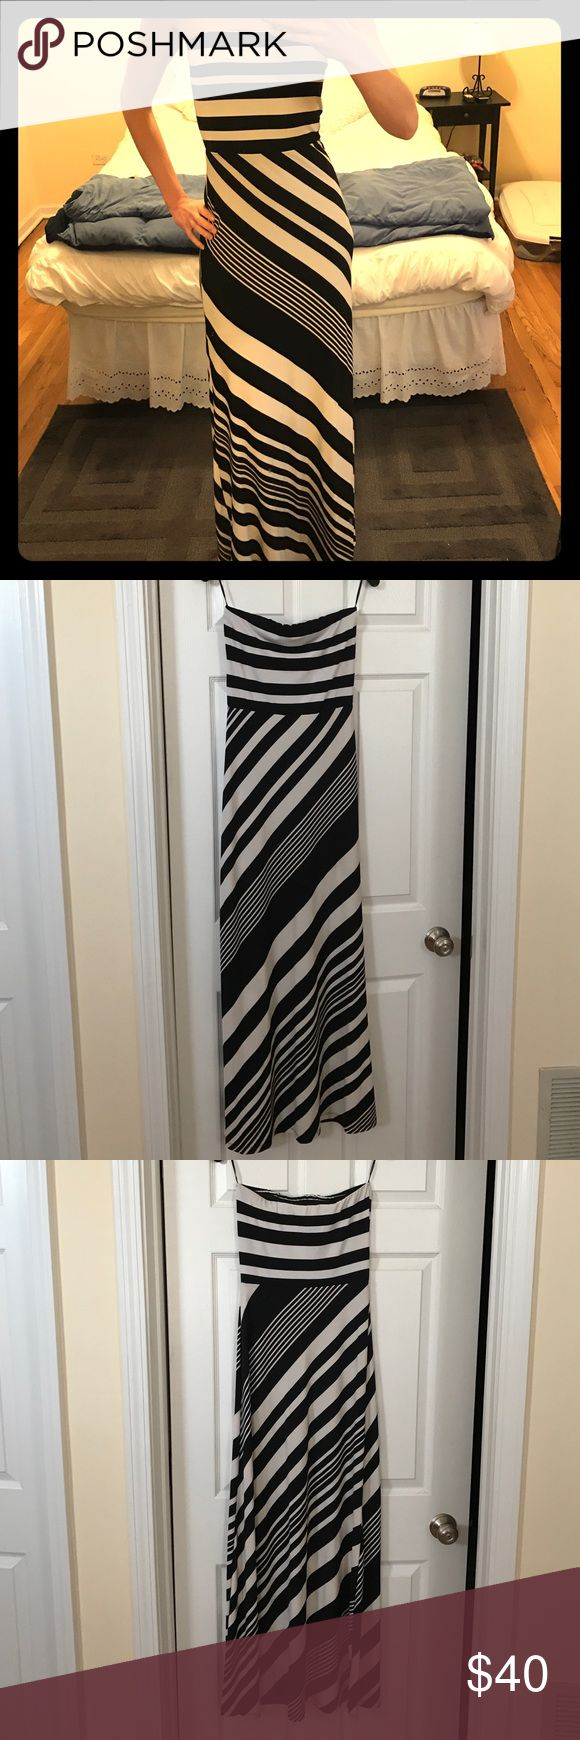 Black and white striped MM Couture maxi dress Black and white strapless maxi dress. Worn once and in great condition.  Very comfortable and stretchy. It's lined to above the knee. MM Couture Dresses Maxi